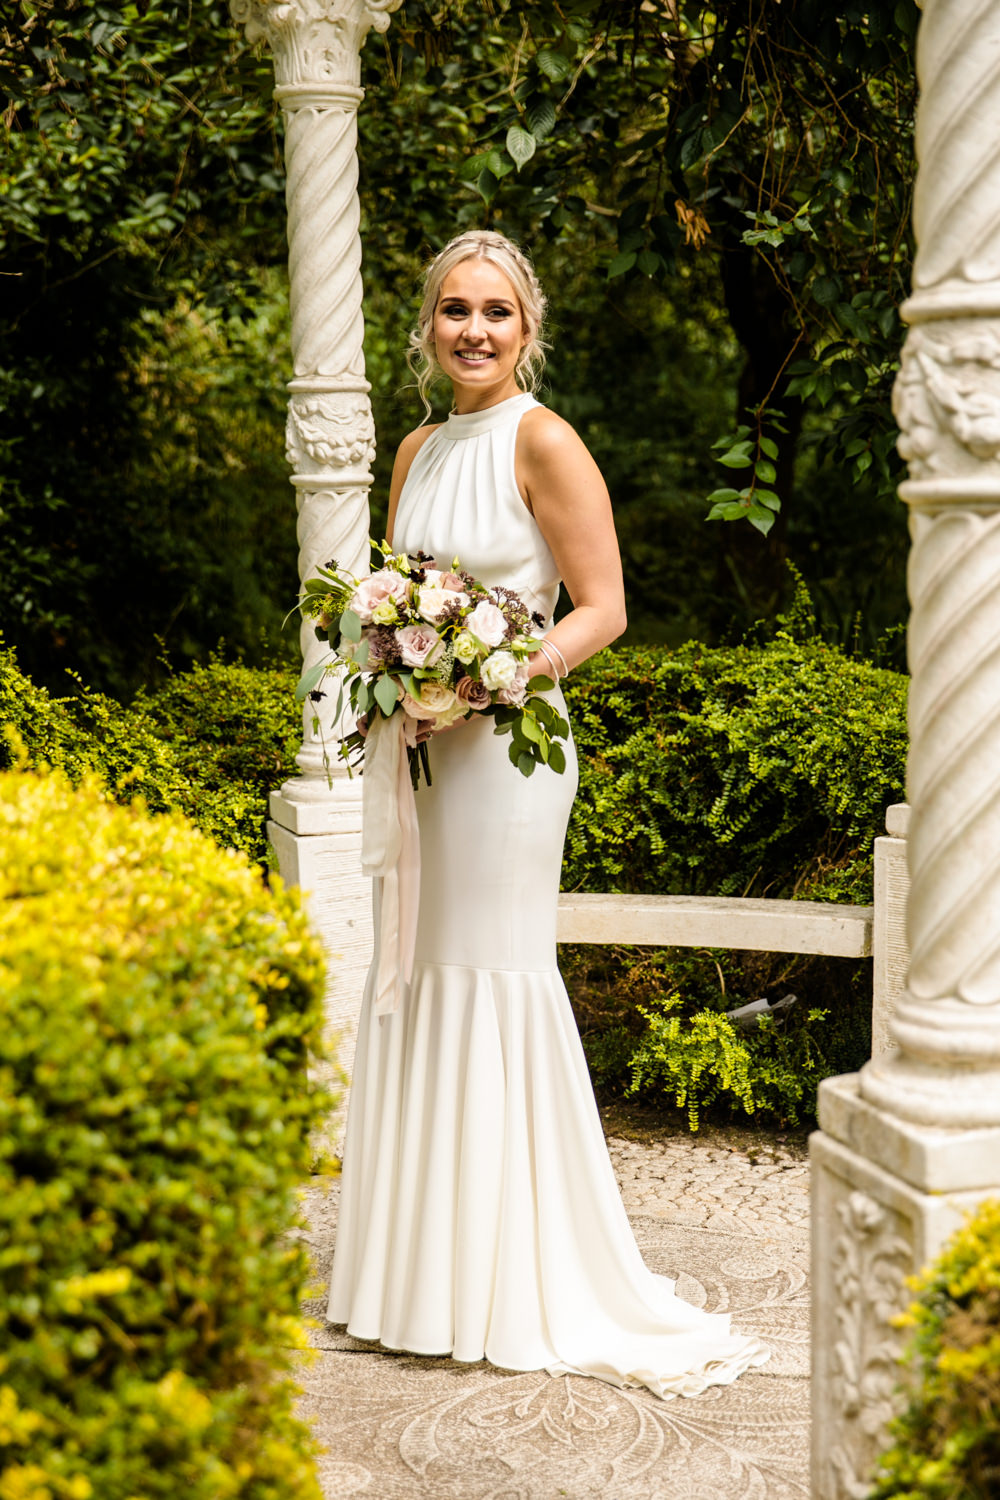 Bride Bridal Halter Neck Dress Gown Fishtail Button Back Blousy Bouquet Mill Barns Wedding Cassandra Lane Photography